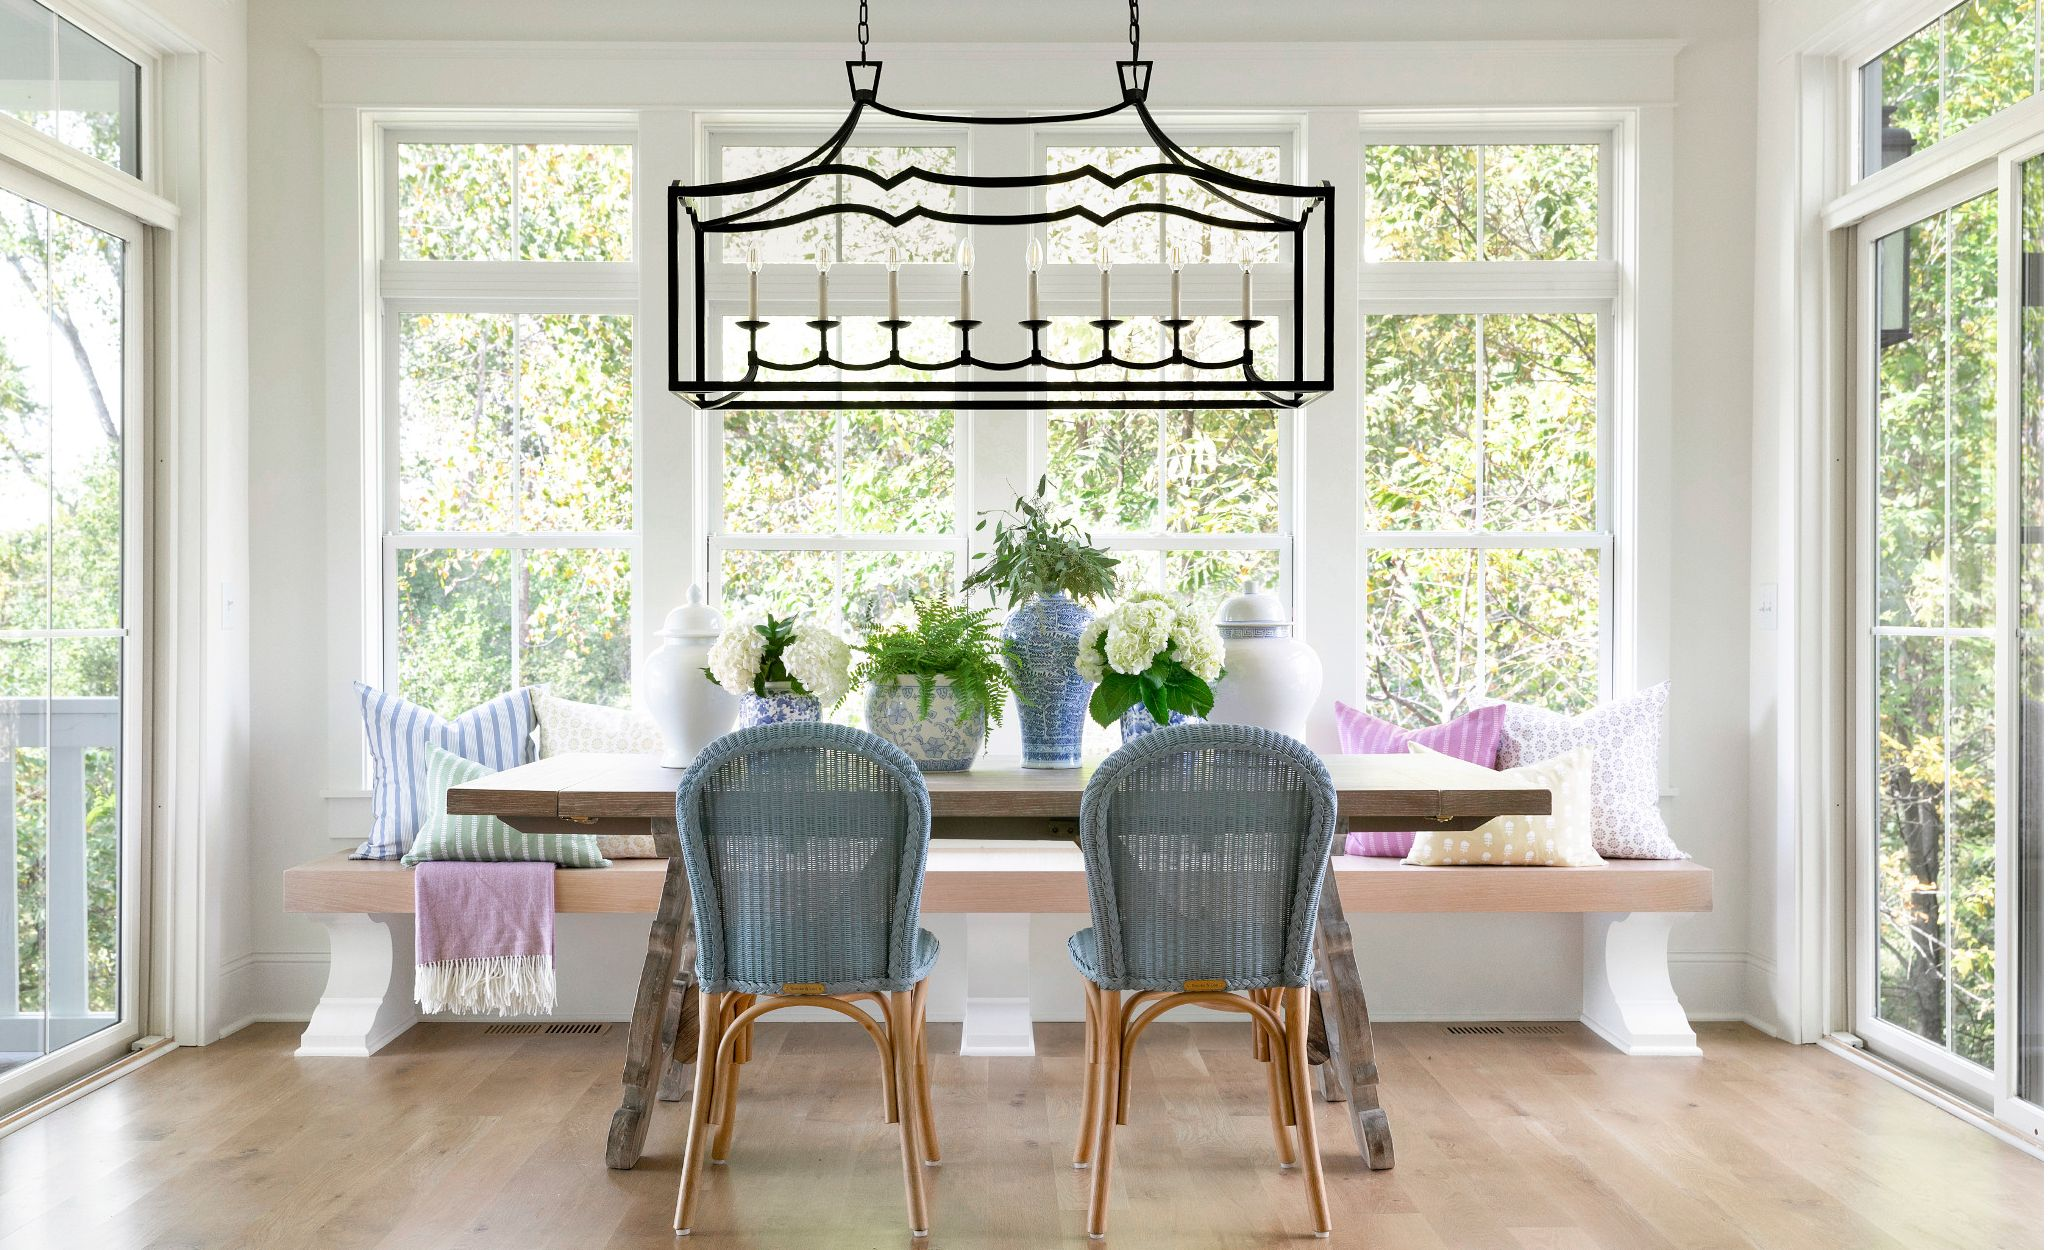 The farmhouse's open and airy dining room features the wood Olivia table.